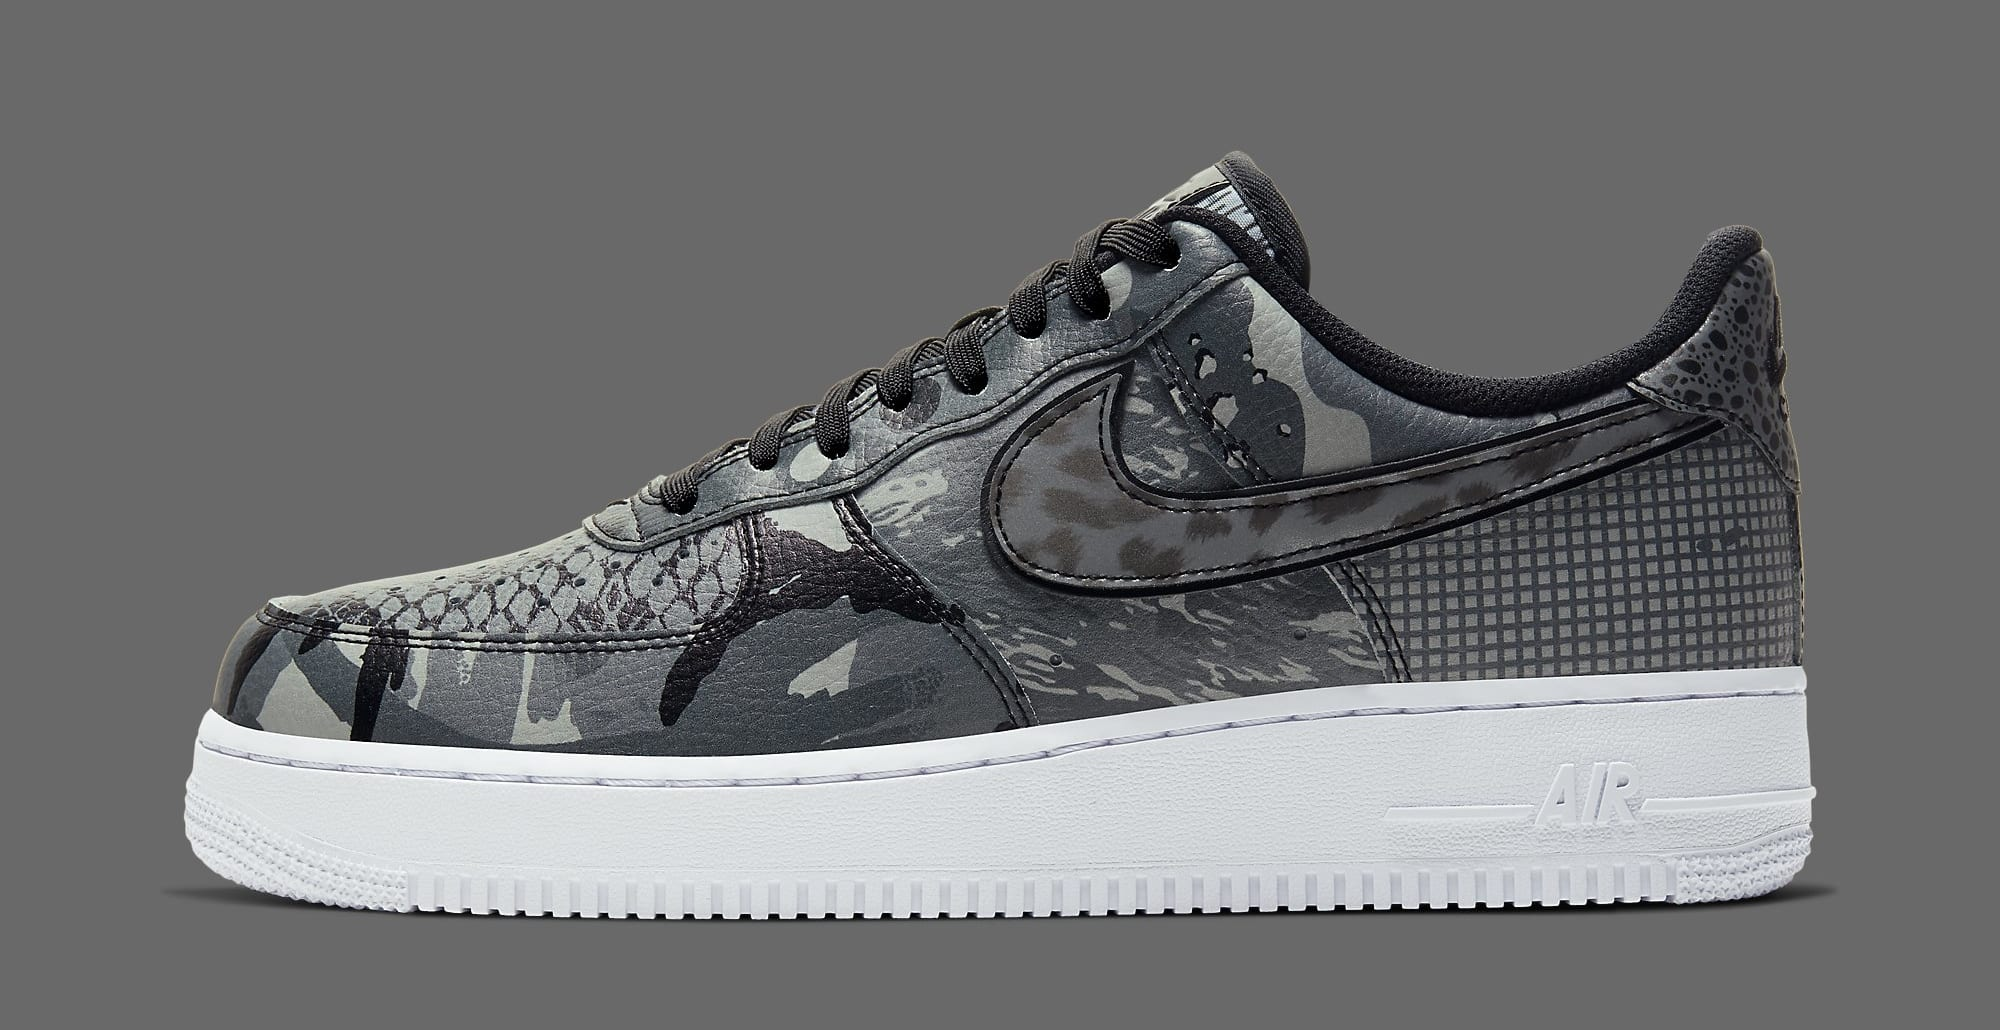 nike-air-force-1-low-all-star-ct8441-001-lateral